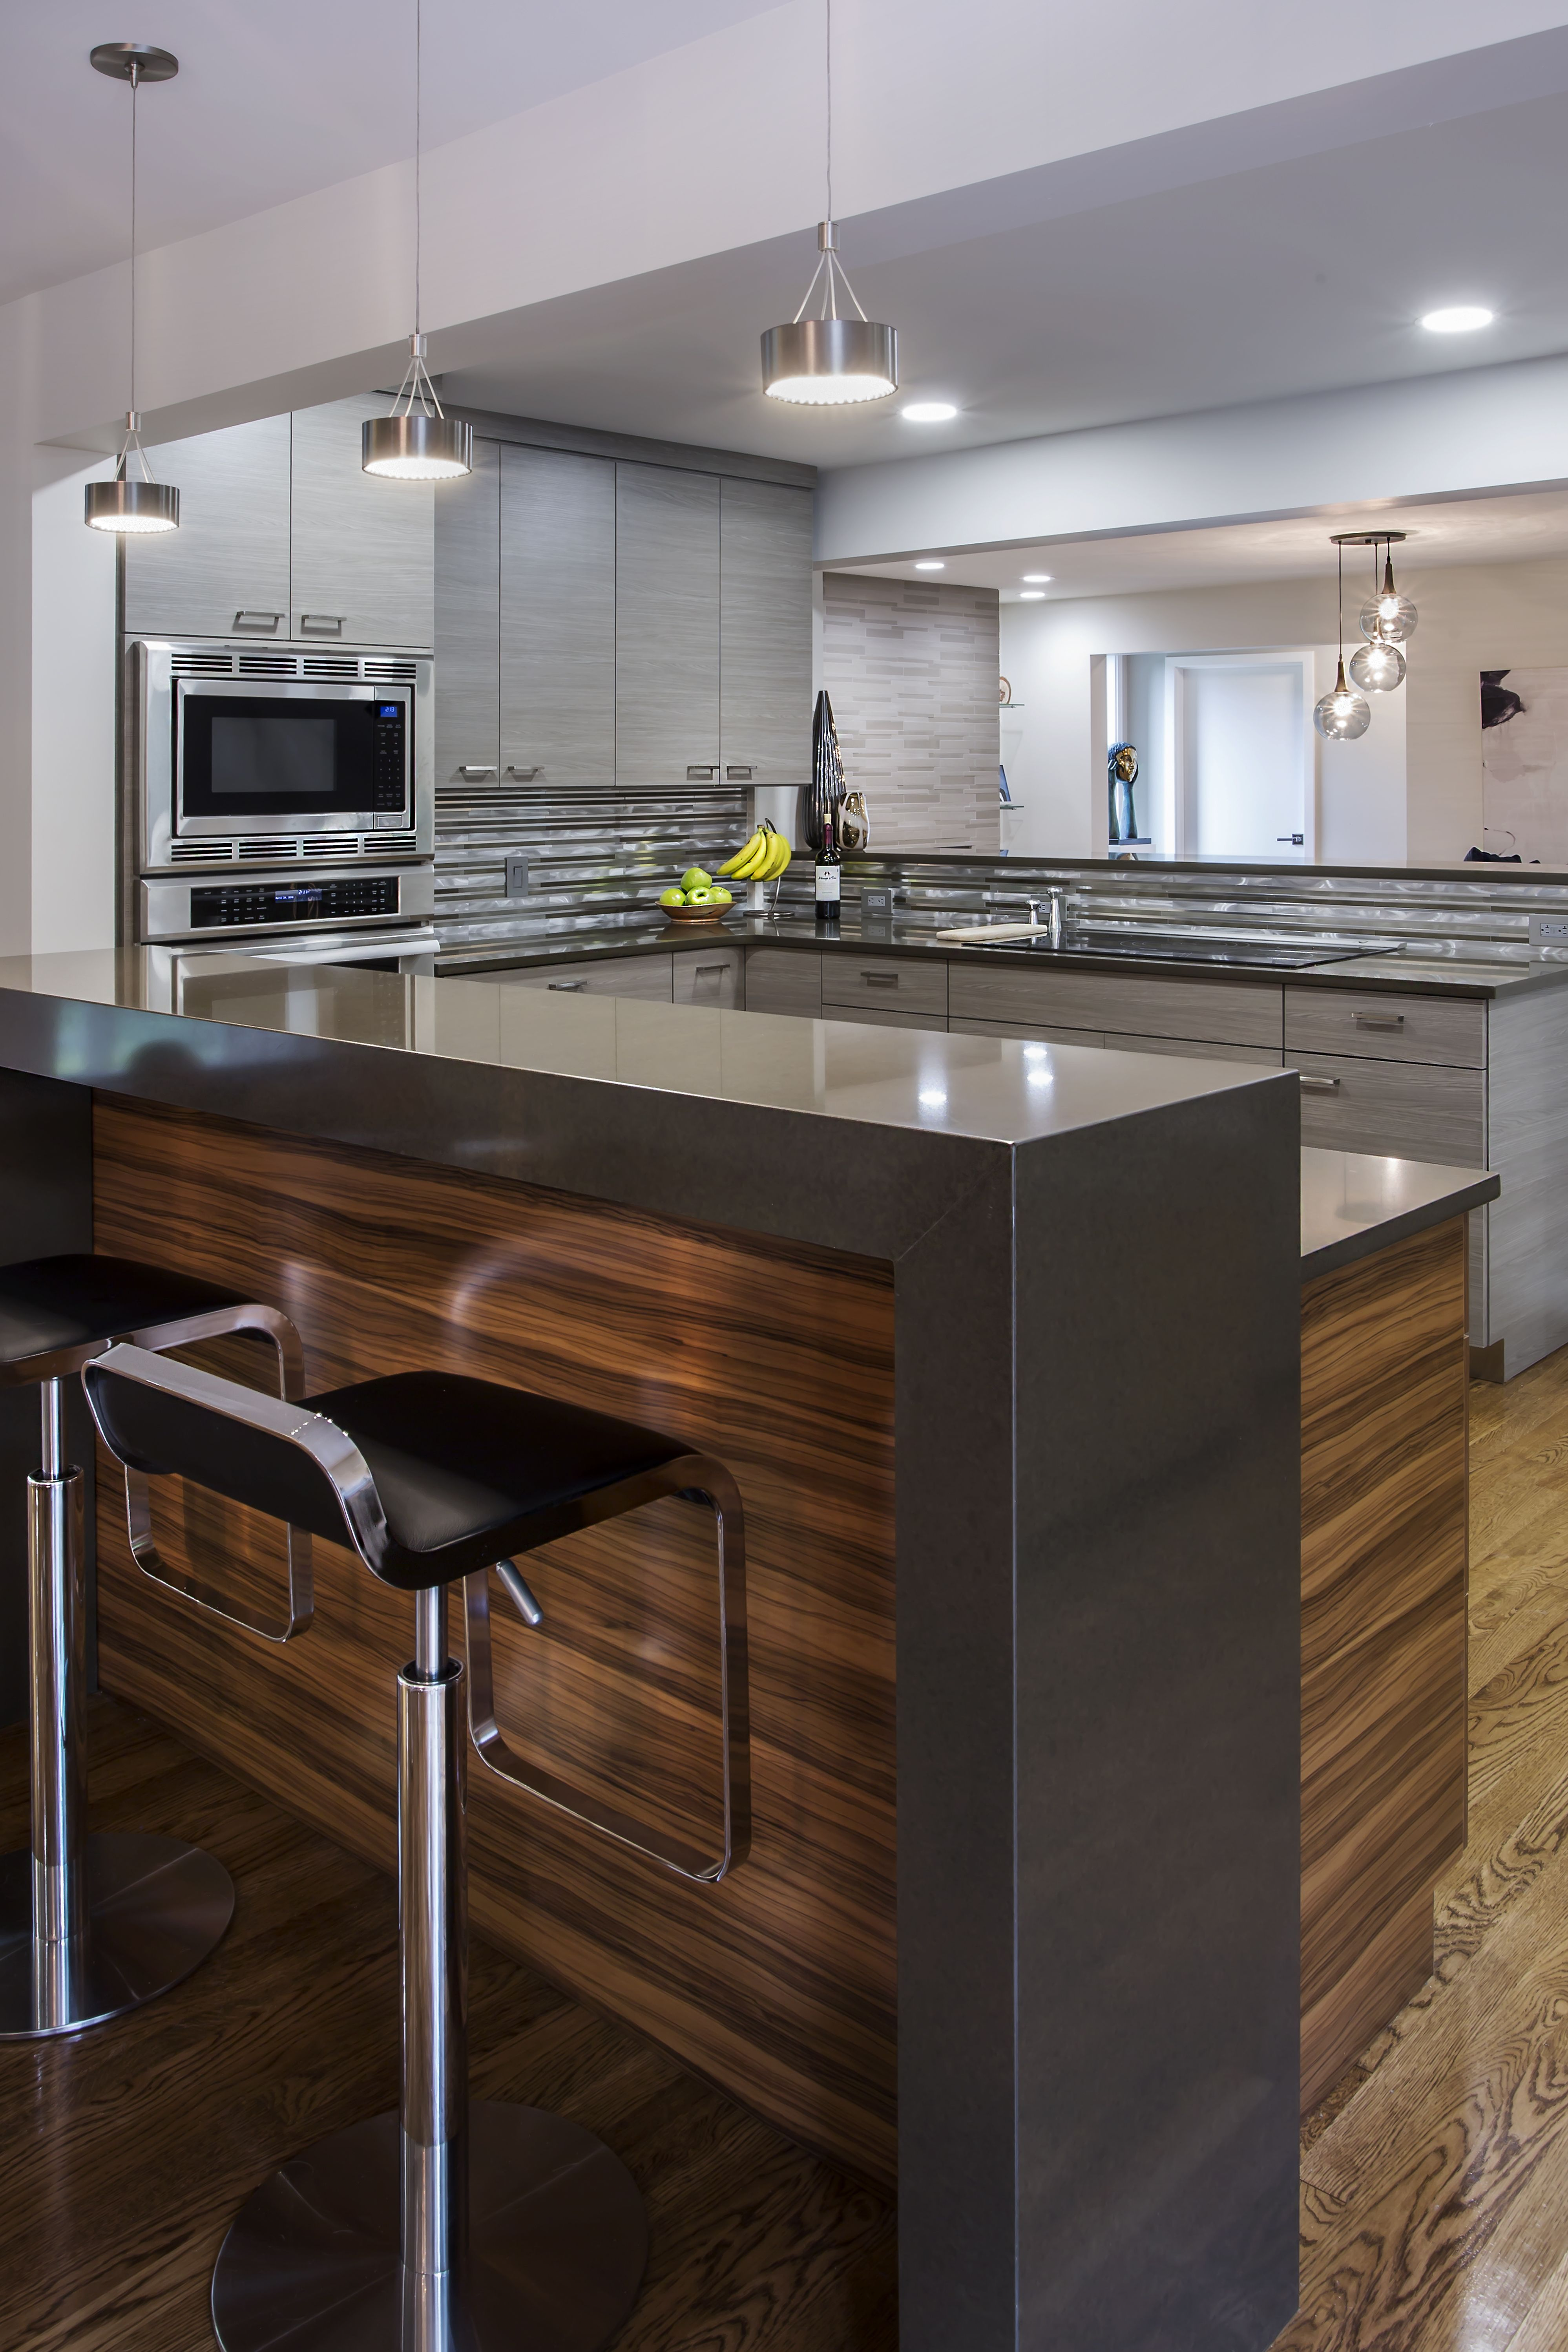 modern kitchen remodeling project by vmax llc in richmond va | vmax